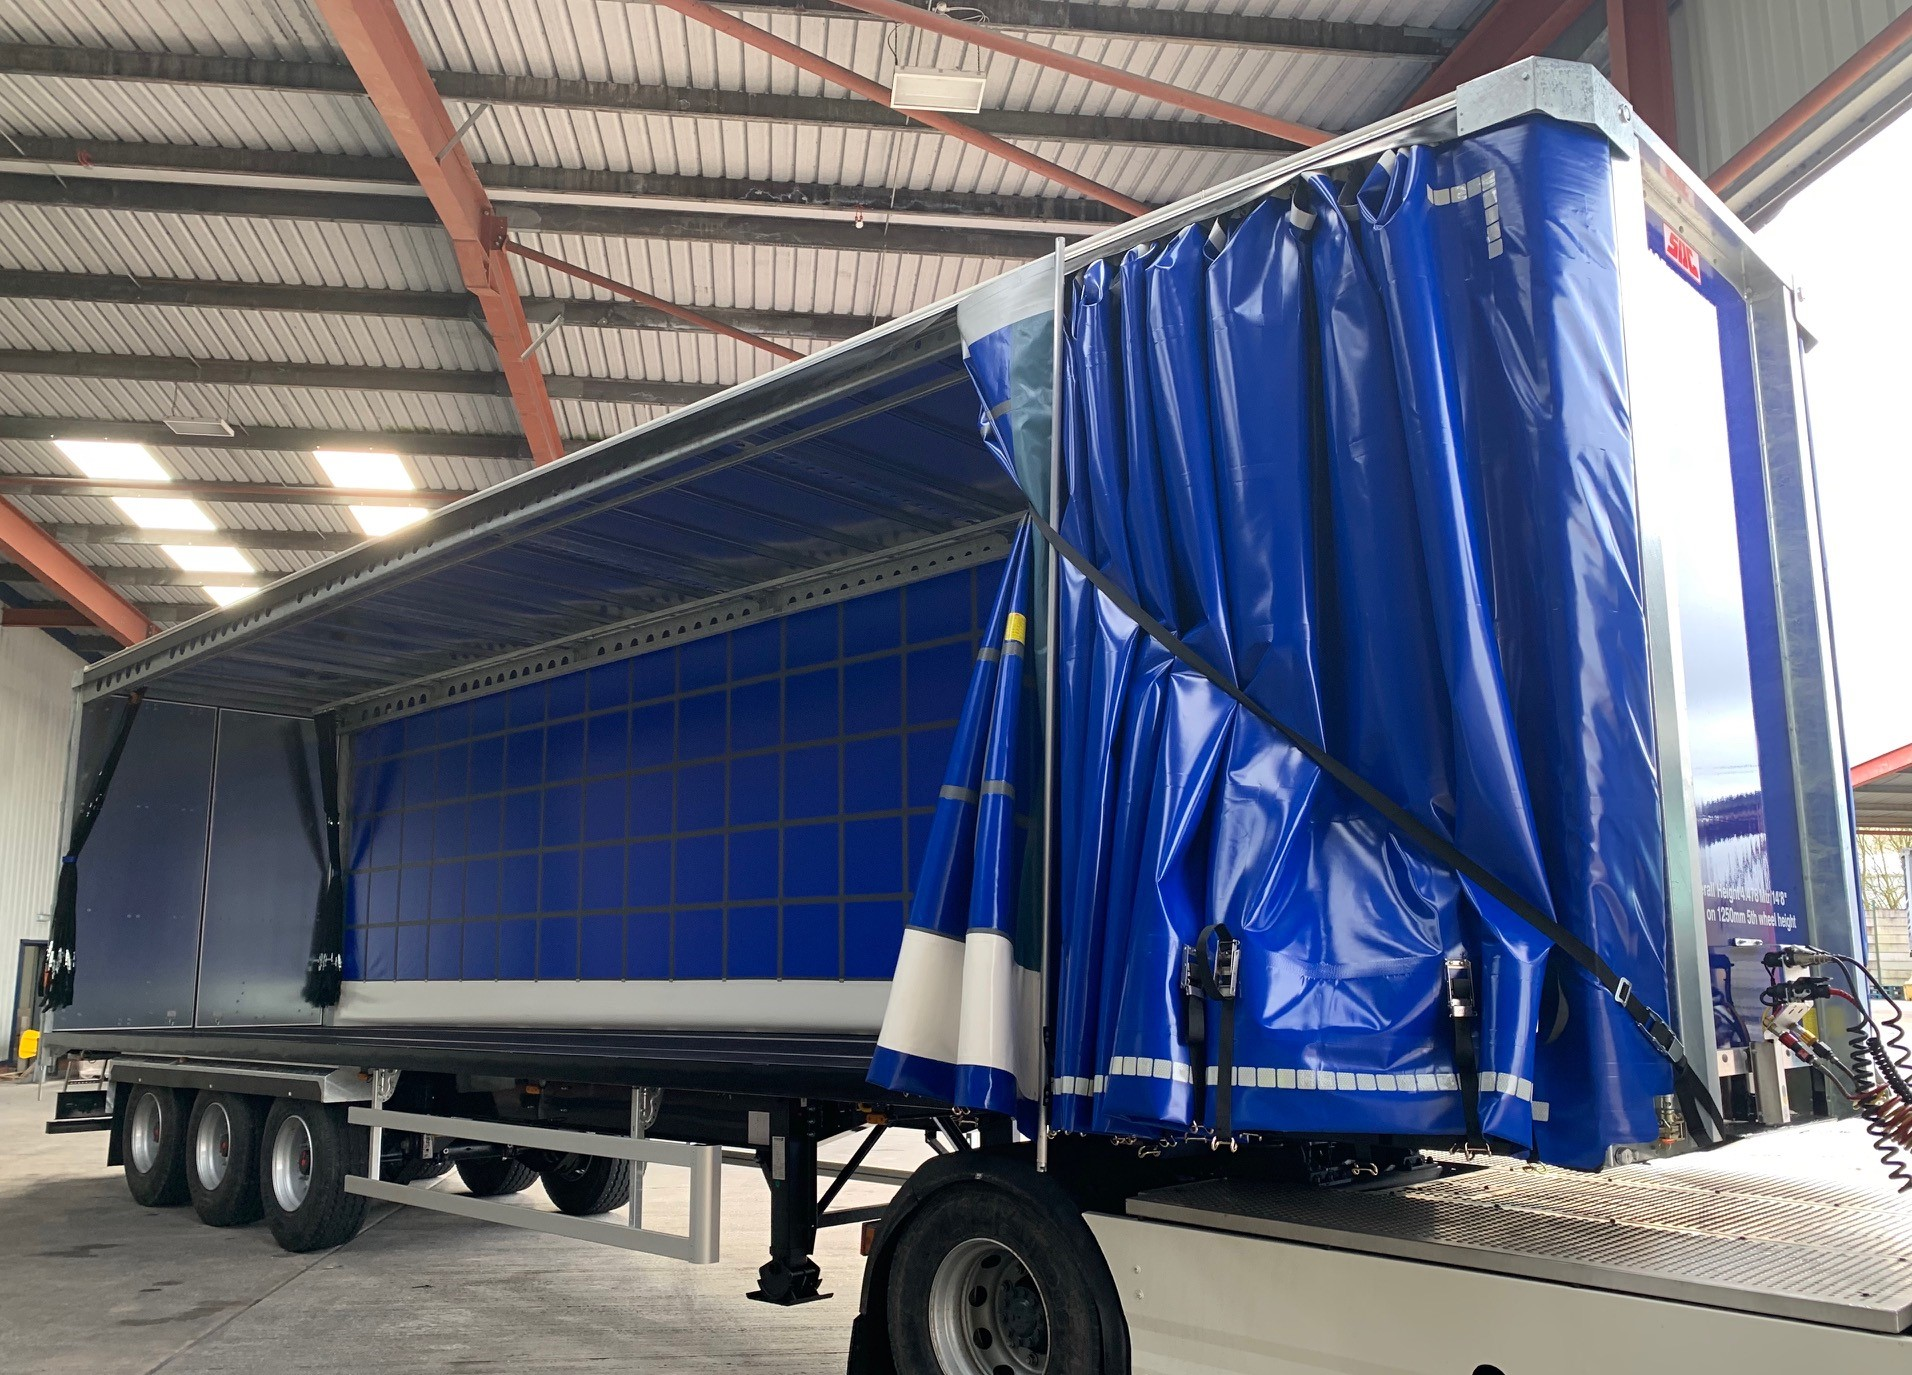 How to safely operate curtains on a curtain sided trailer